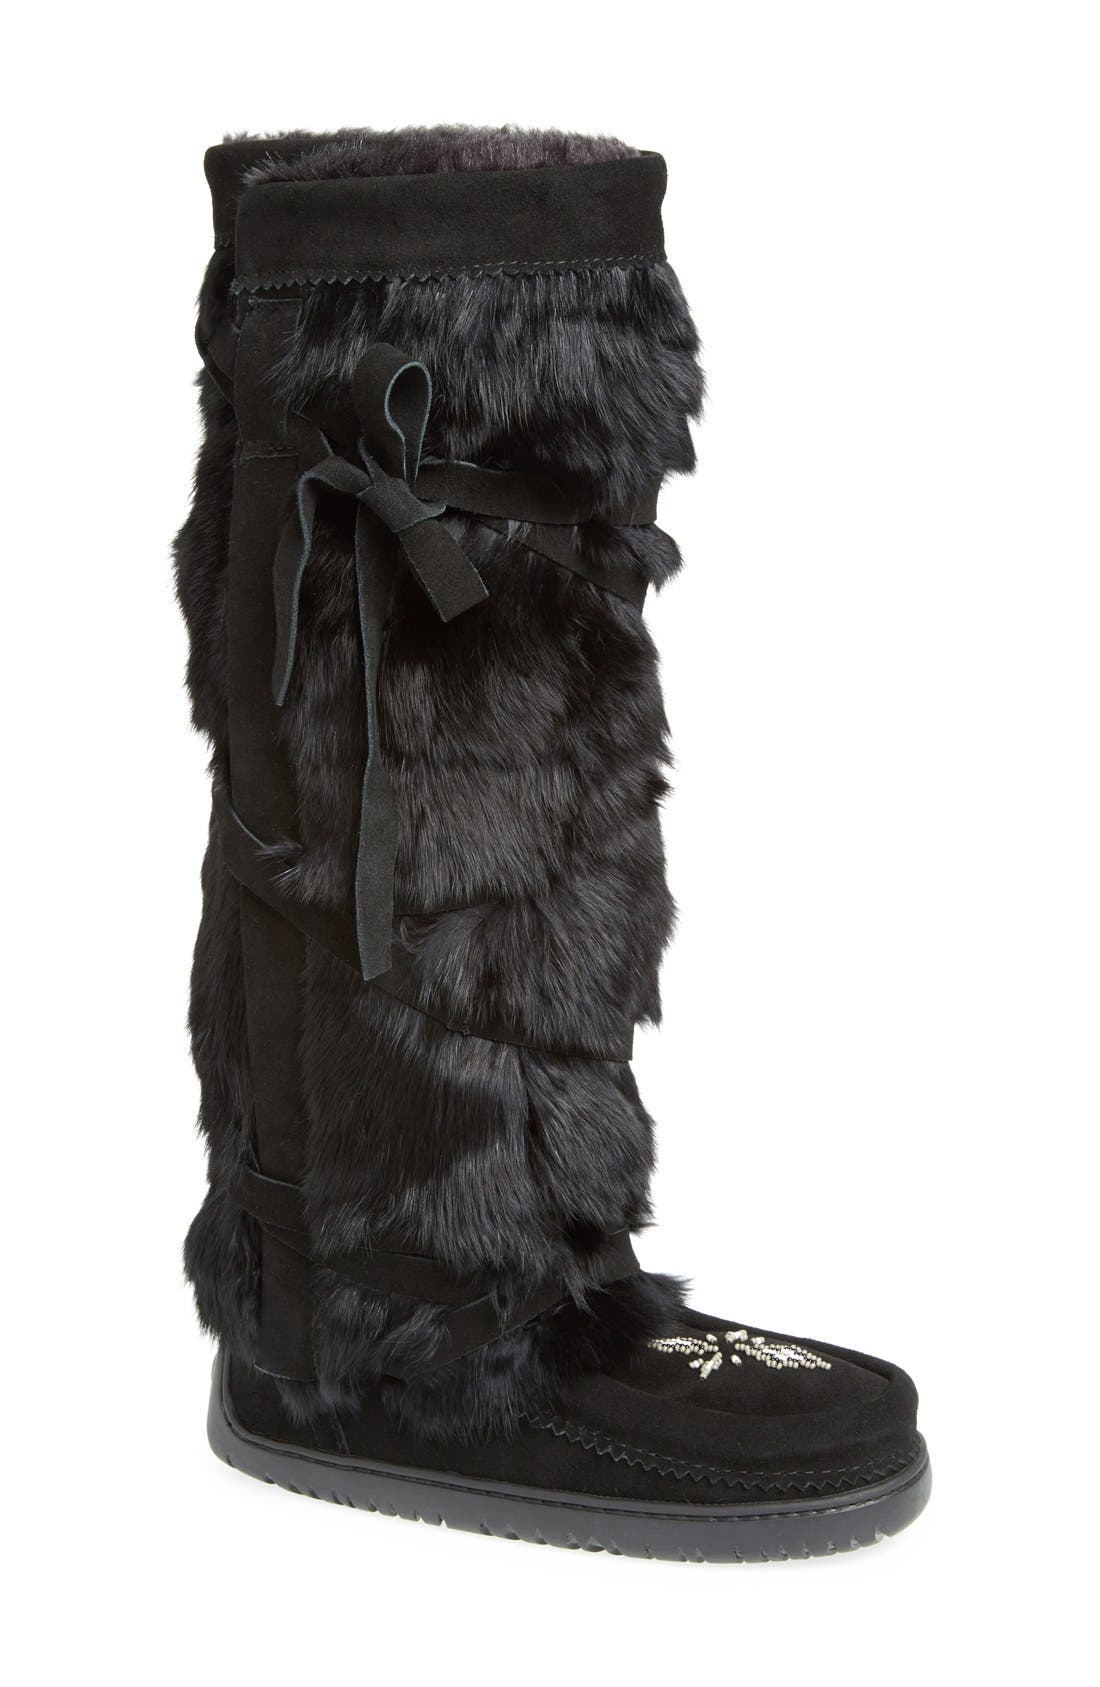 MANITOBAH MUKLUKS Genuine Rabbit Fur Tall Wrap Boot in Black